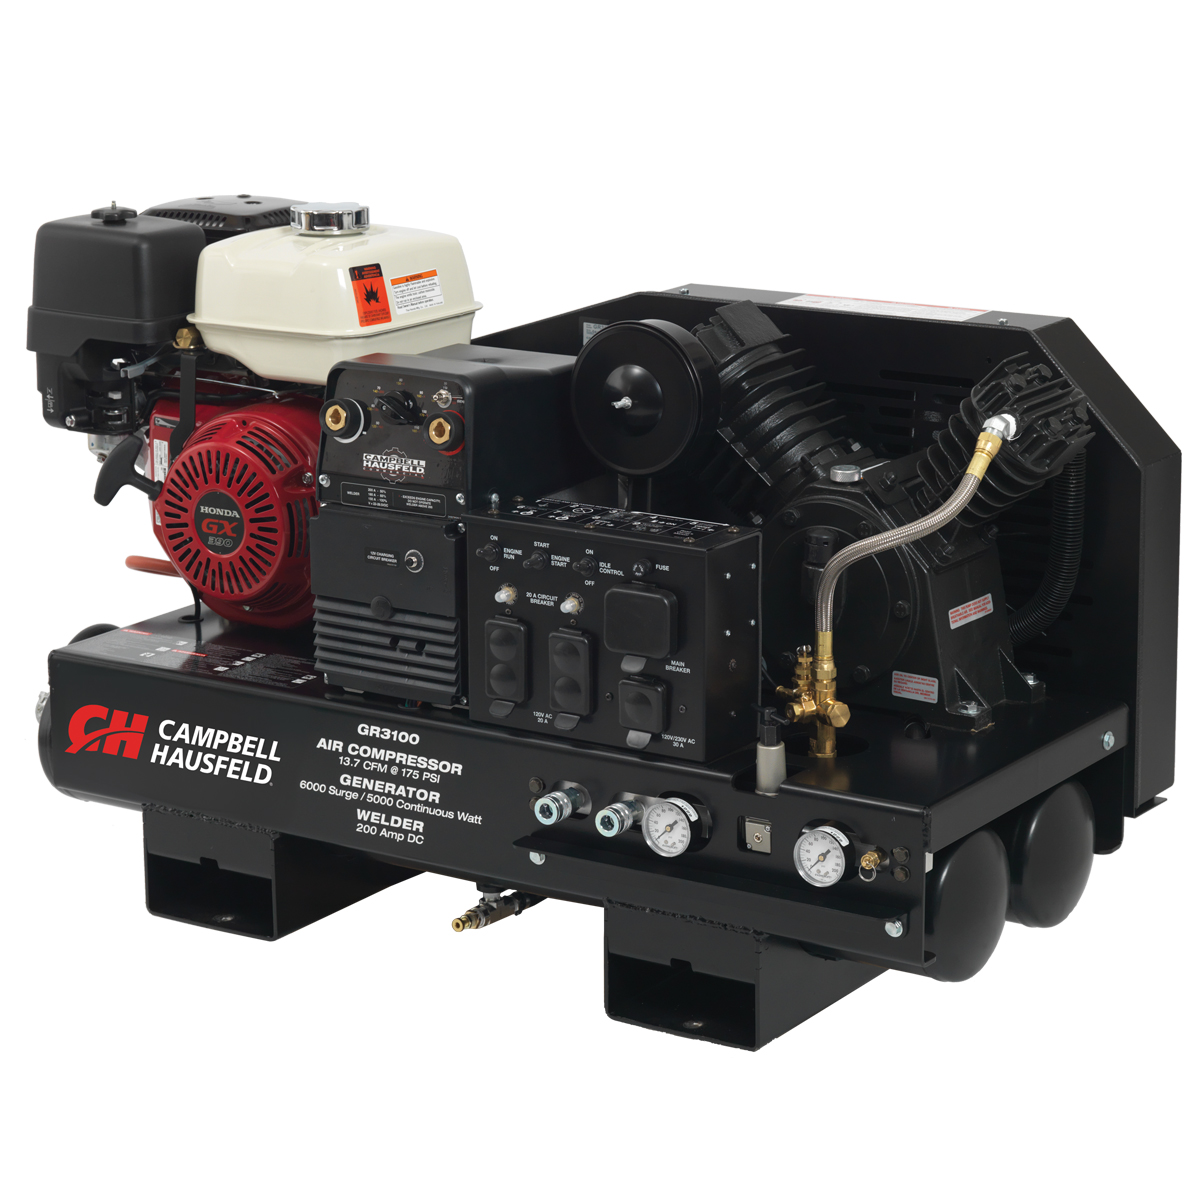 Campbell Hausfeld Combination Unit, 10-Gallon 14CFM Compressor 5000W Generator 180A Welder GX390 Honda (GR3100) product image left angle